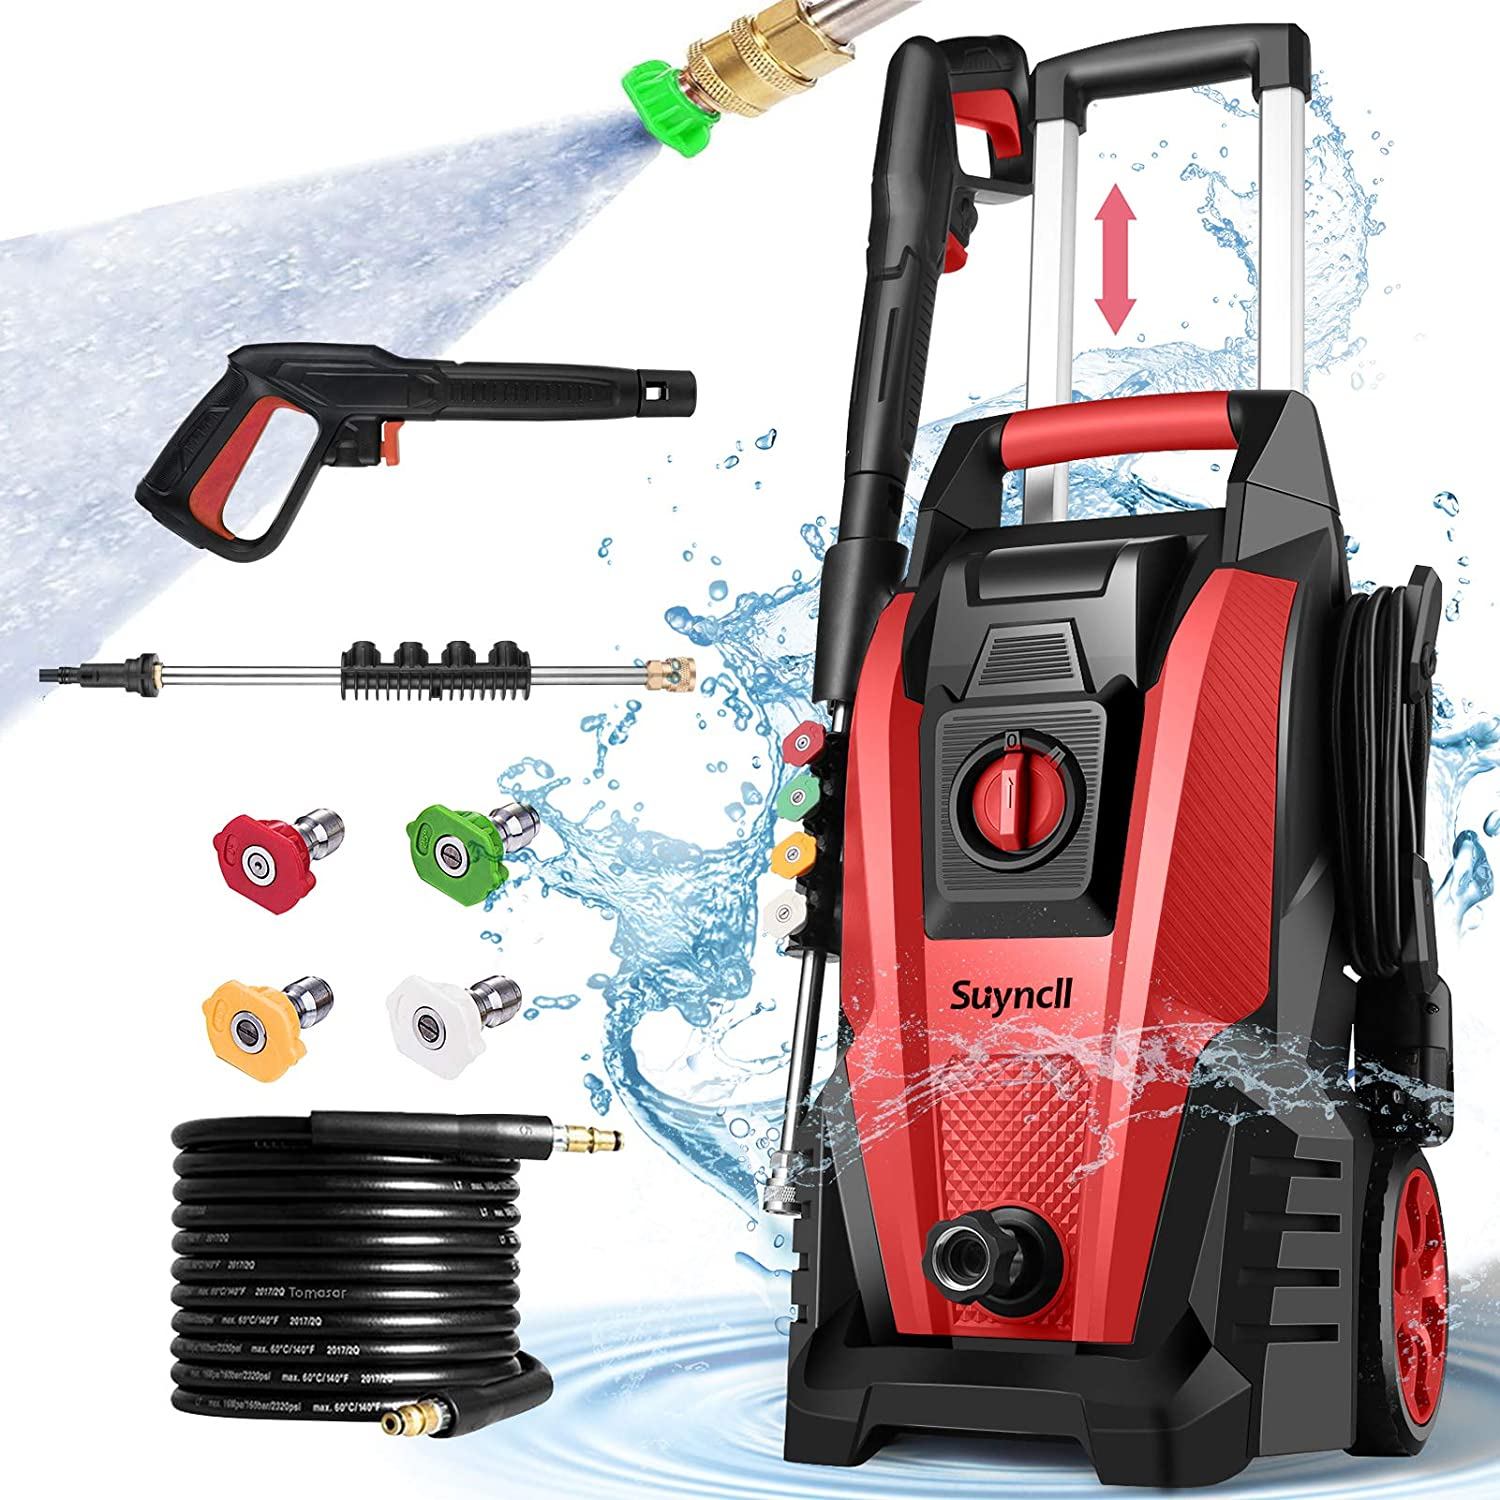 Suyncll Pressure Washer, 3800PSI Electric Power Washer, 2000W High Pressure Washer, Professional Washer Cleaner, with 4 Nozzles, Soap Bottle and Hose Reel, Best for Cleaning Cars, Driveways, Patios : Garden & Outdoor